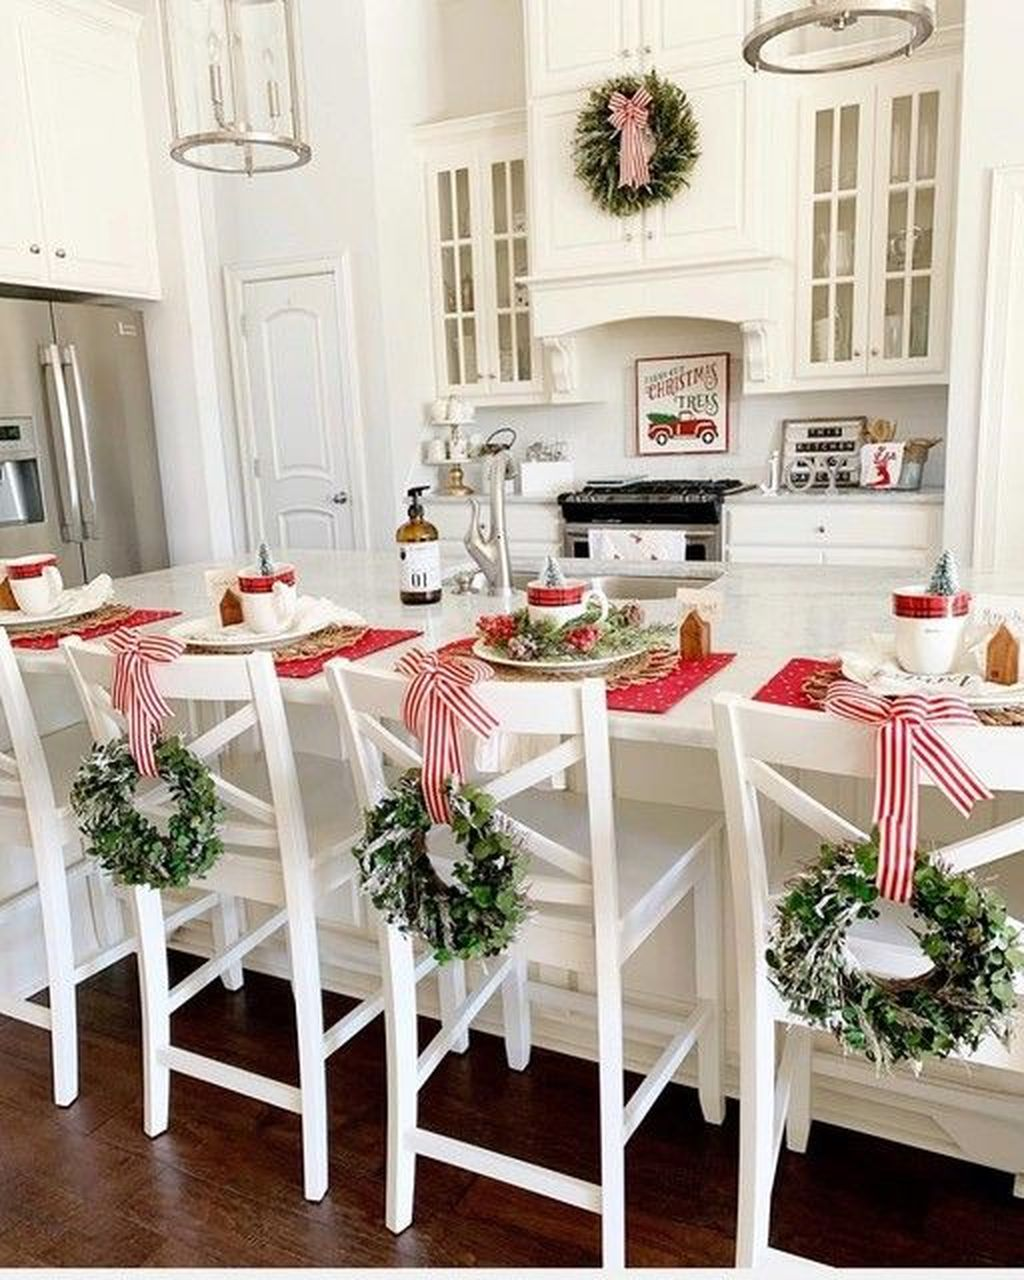 Popular Christmas Decor Ideas For Kitchen Island 07